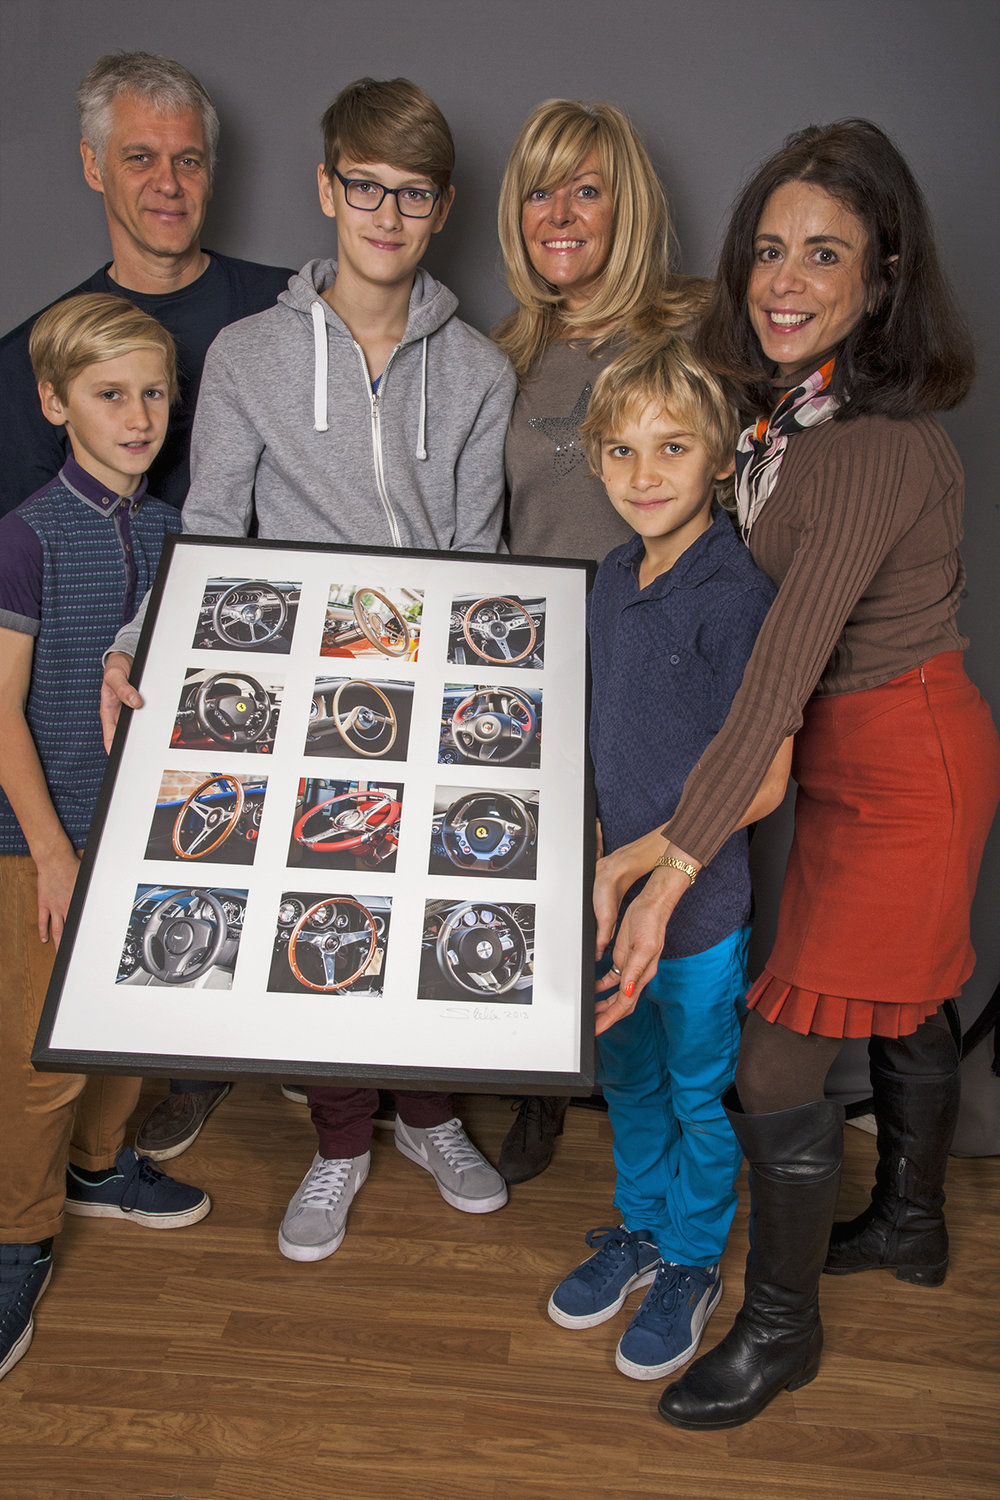 - The winners from Stella's exhibition;'A Drive Down Memory Lane' at 'Chartwell' - Westerham, Kent, UK in 2014.Much to their delight, Nigel Hasler, Julia Cambridge and Nigel's sons; Jake, Ben and Joe, wereawarded the 'Steering Wheel' framedlimited edition photograph.